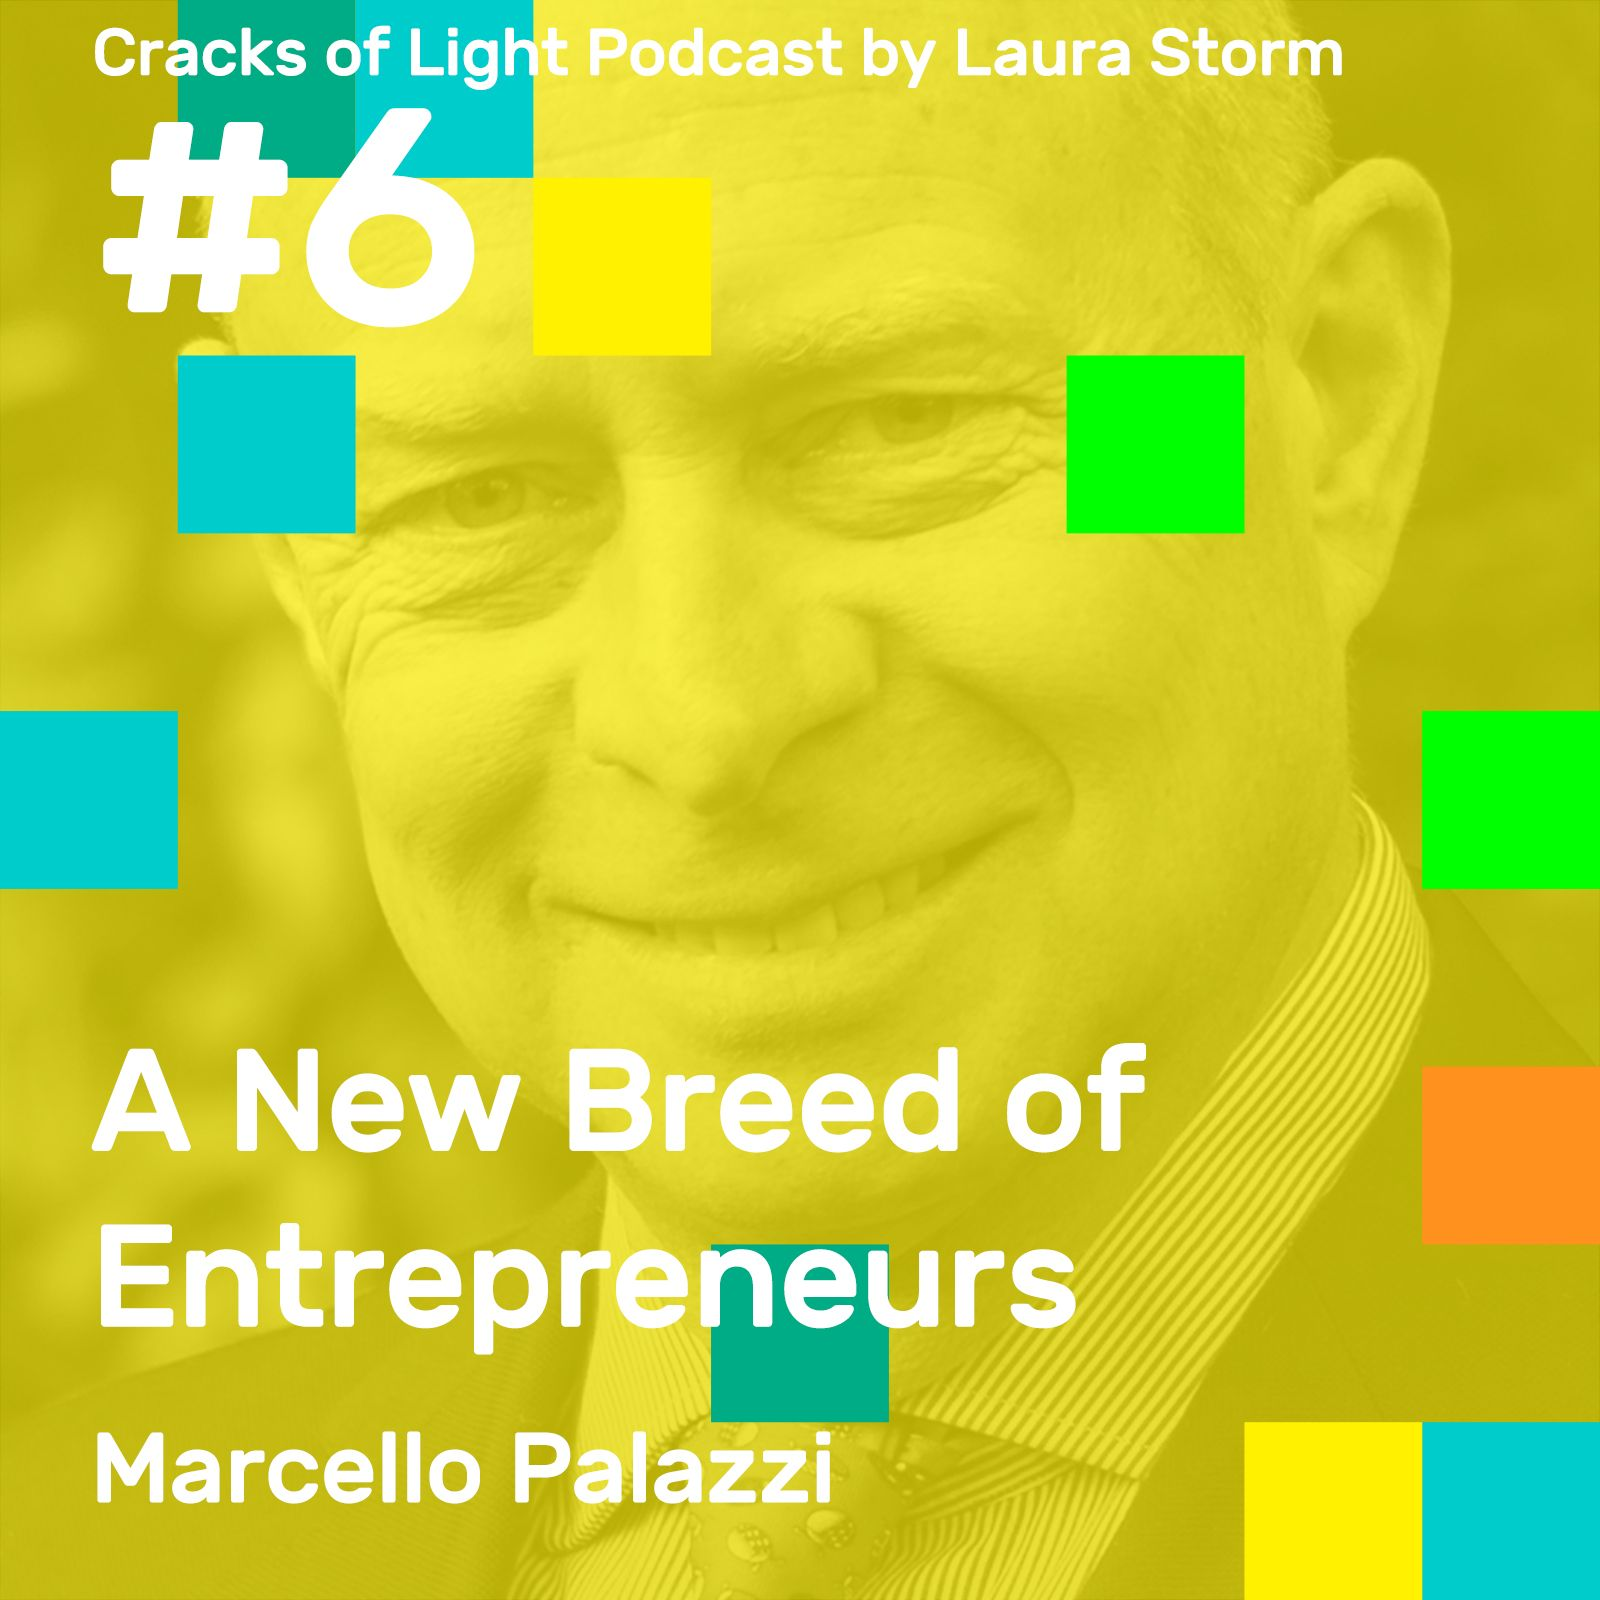 006 A New Breed of Entrepreneurs, with Marcello Palazzi